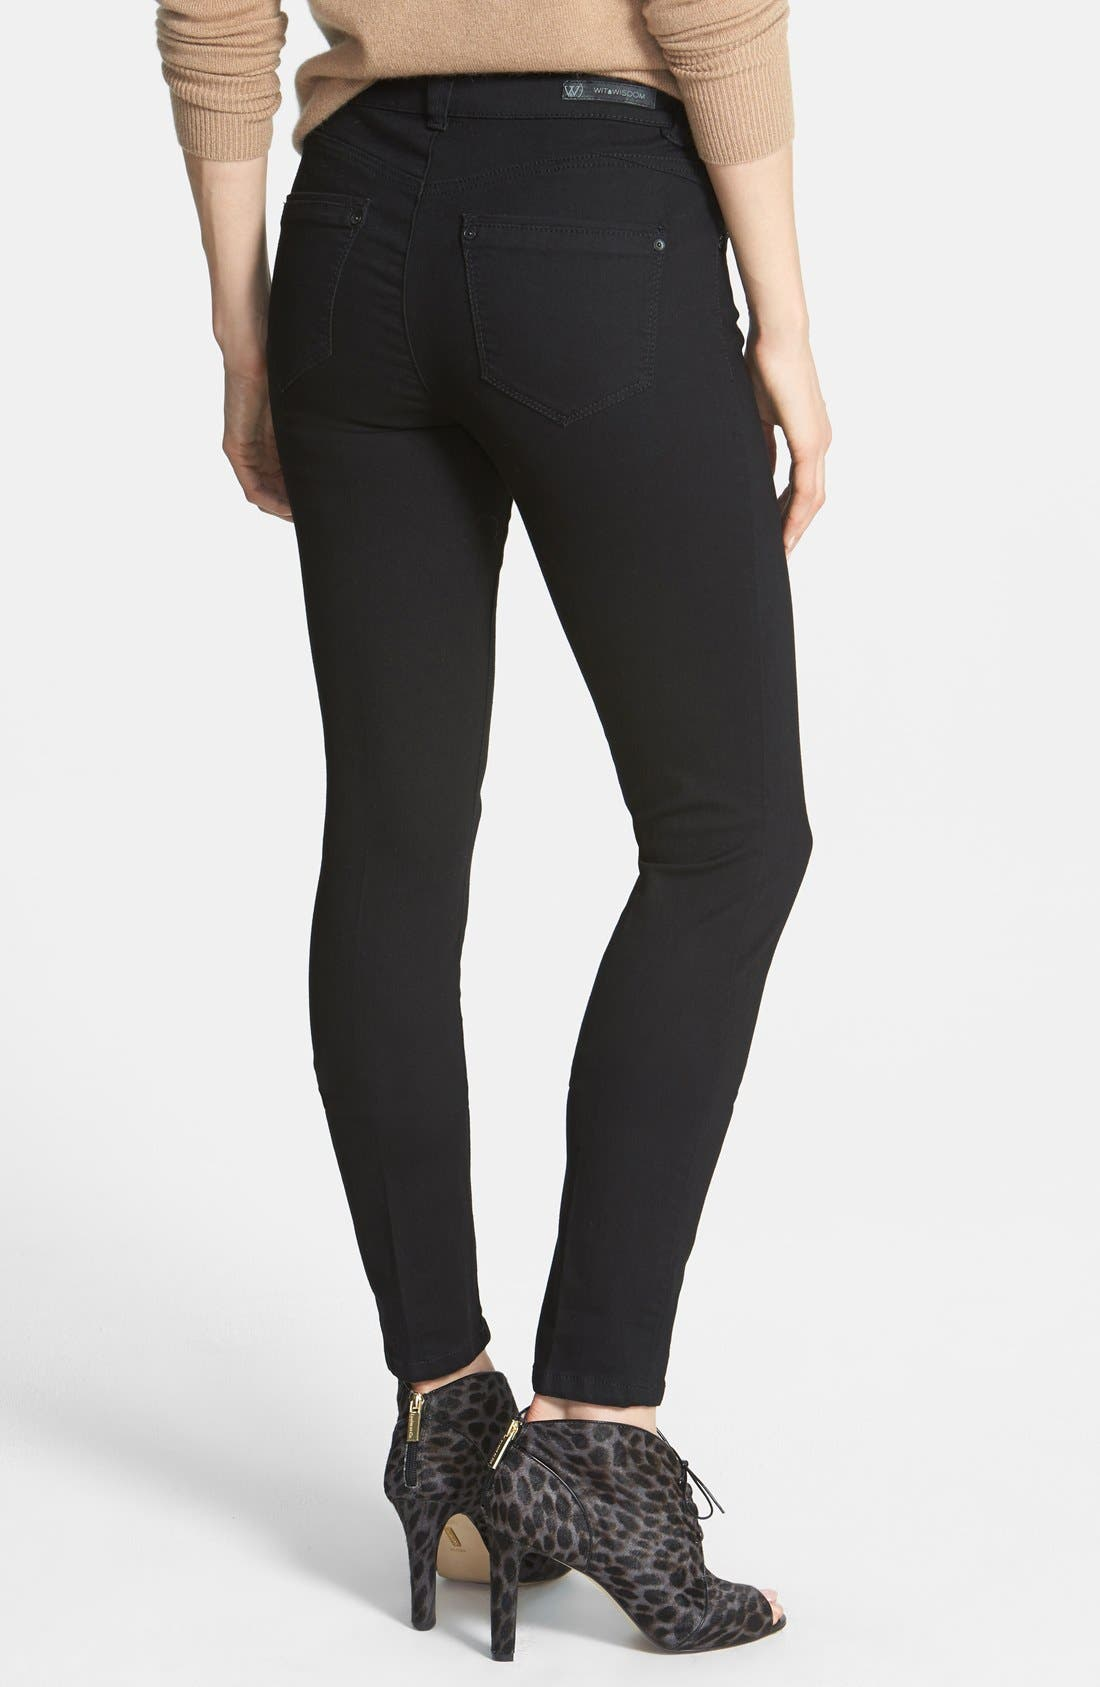 Alternate Image 2  - Wit & Wisdom Lightweight Stretch Skinny Jeans (Black) (Nordstrom Exclusive)